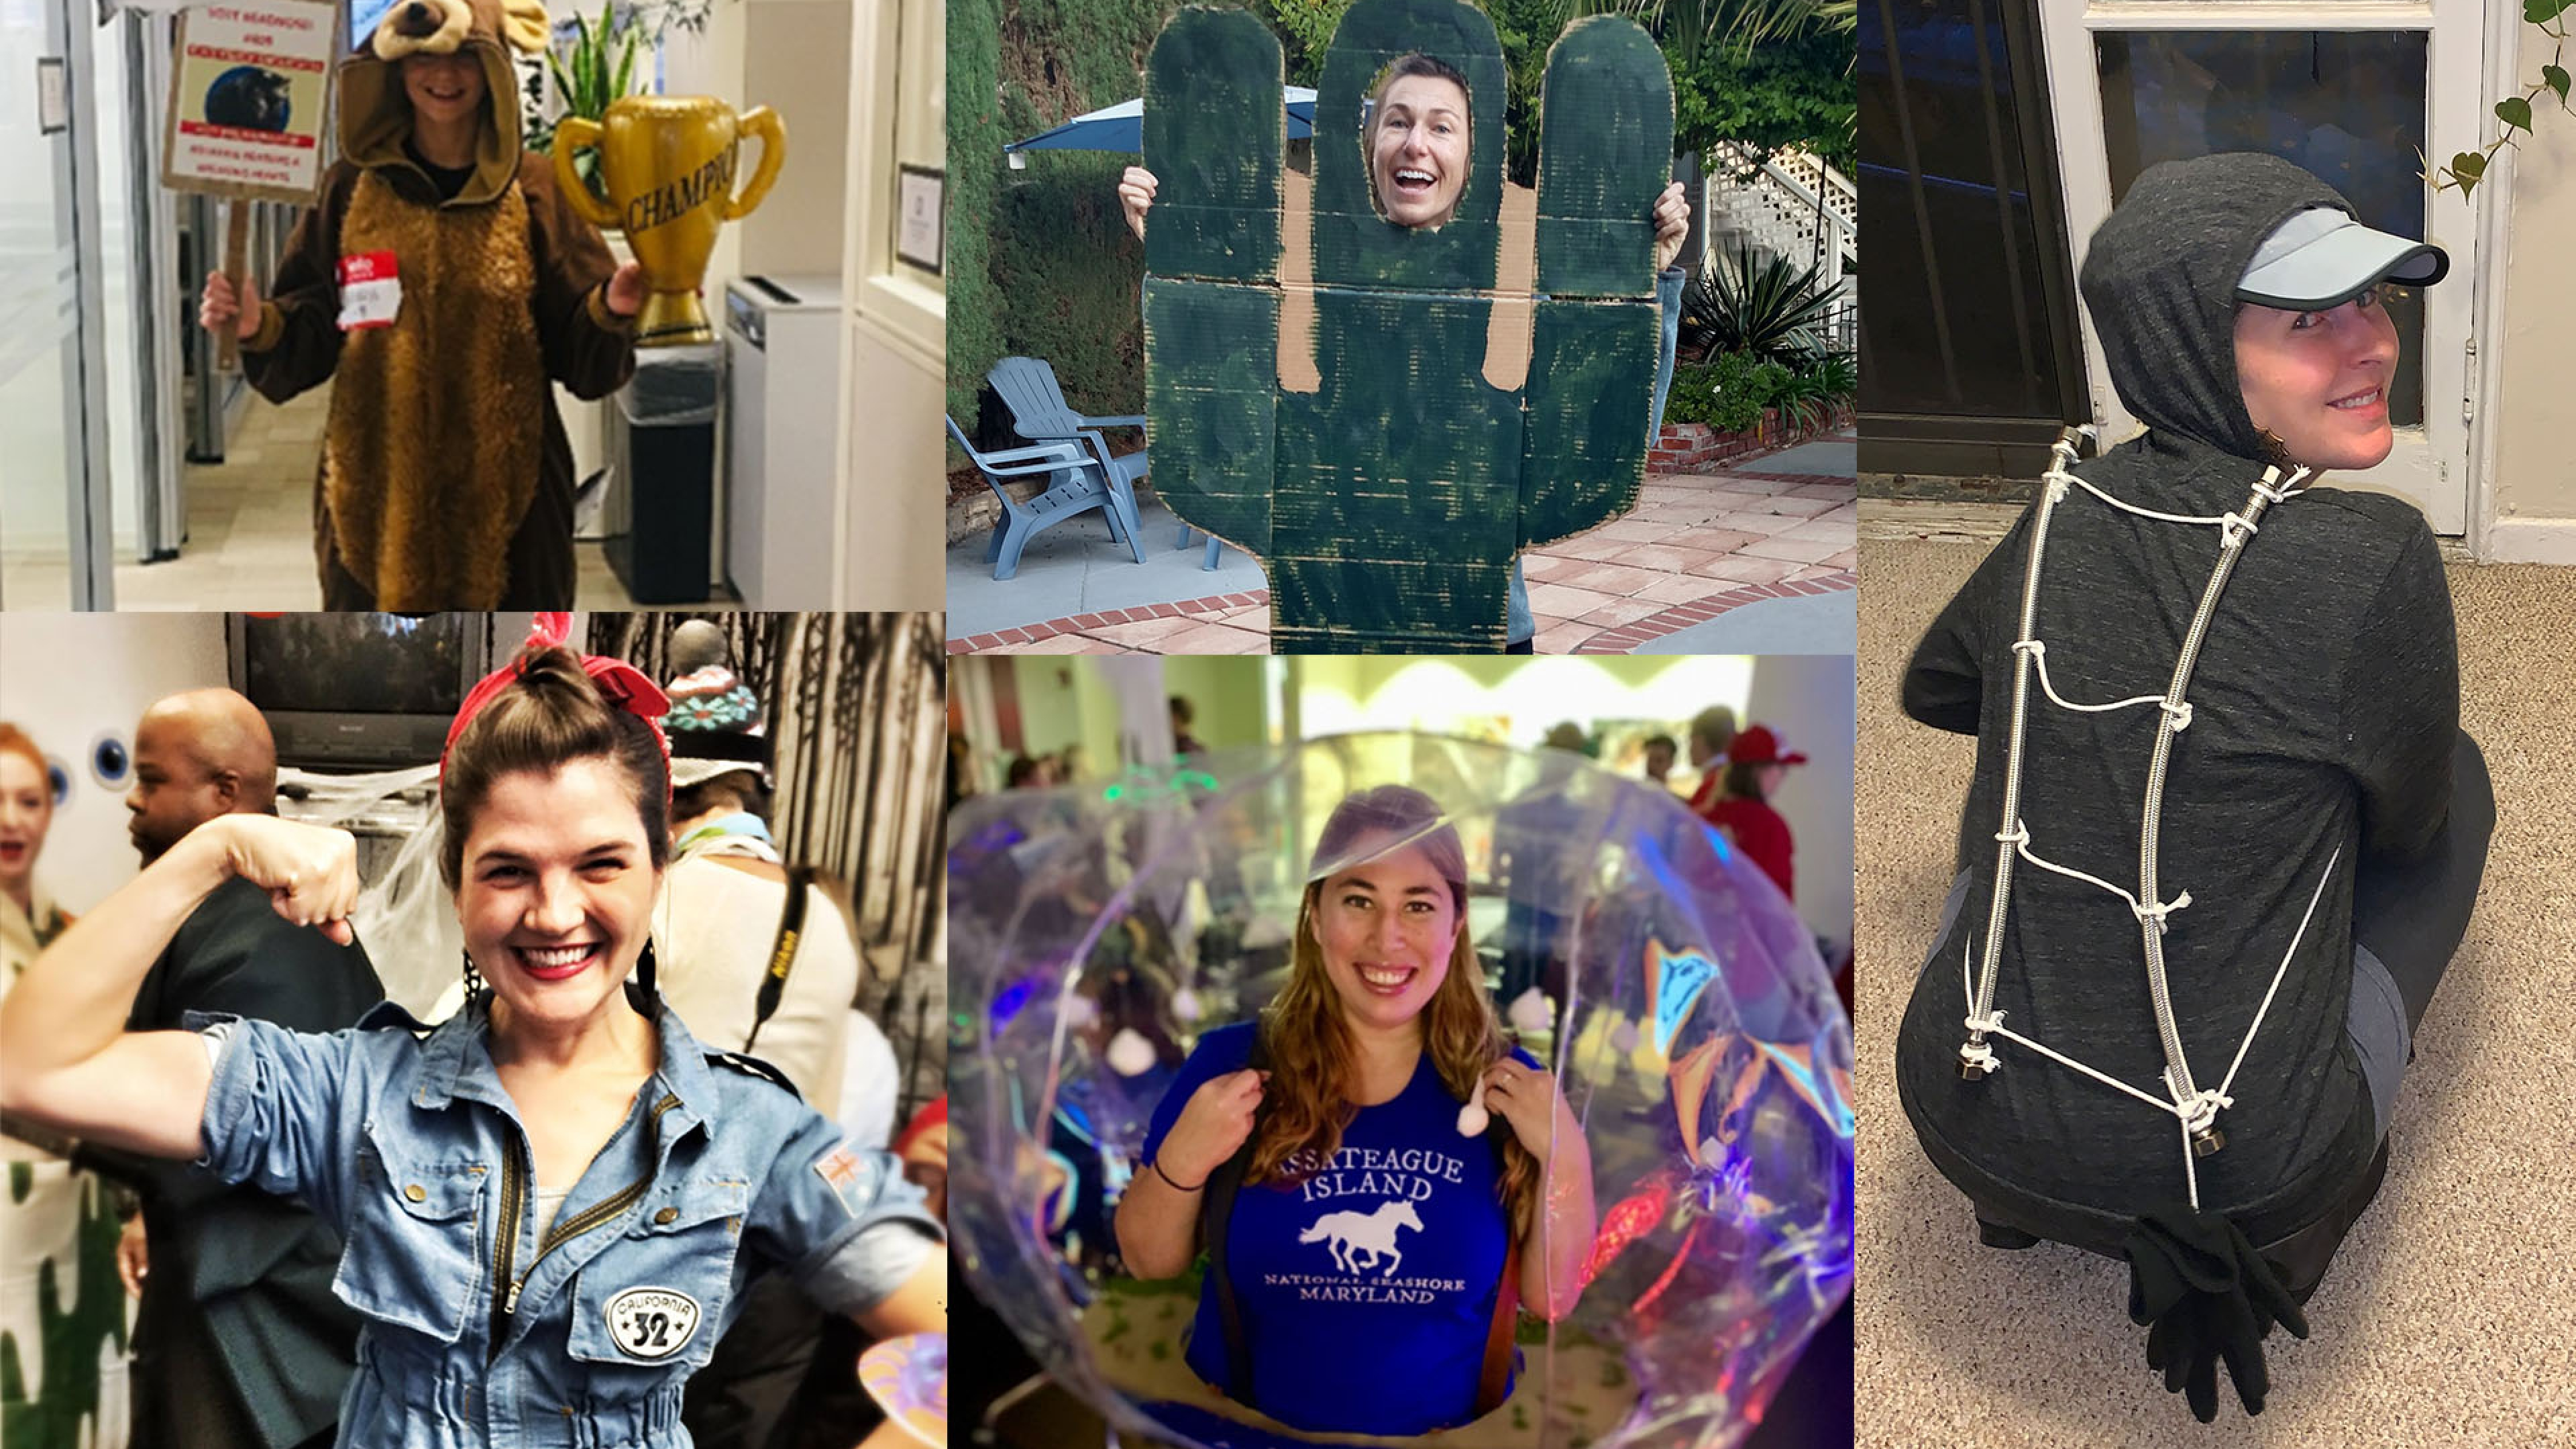 Collage of people in park-inspired Halloween costumes, including a Katmai bear, Saguaro cactus, Half Dome in Yosemite, and Rosie the Riveter